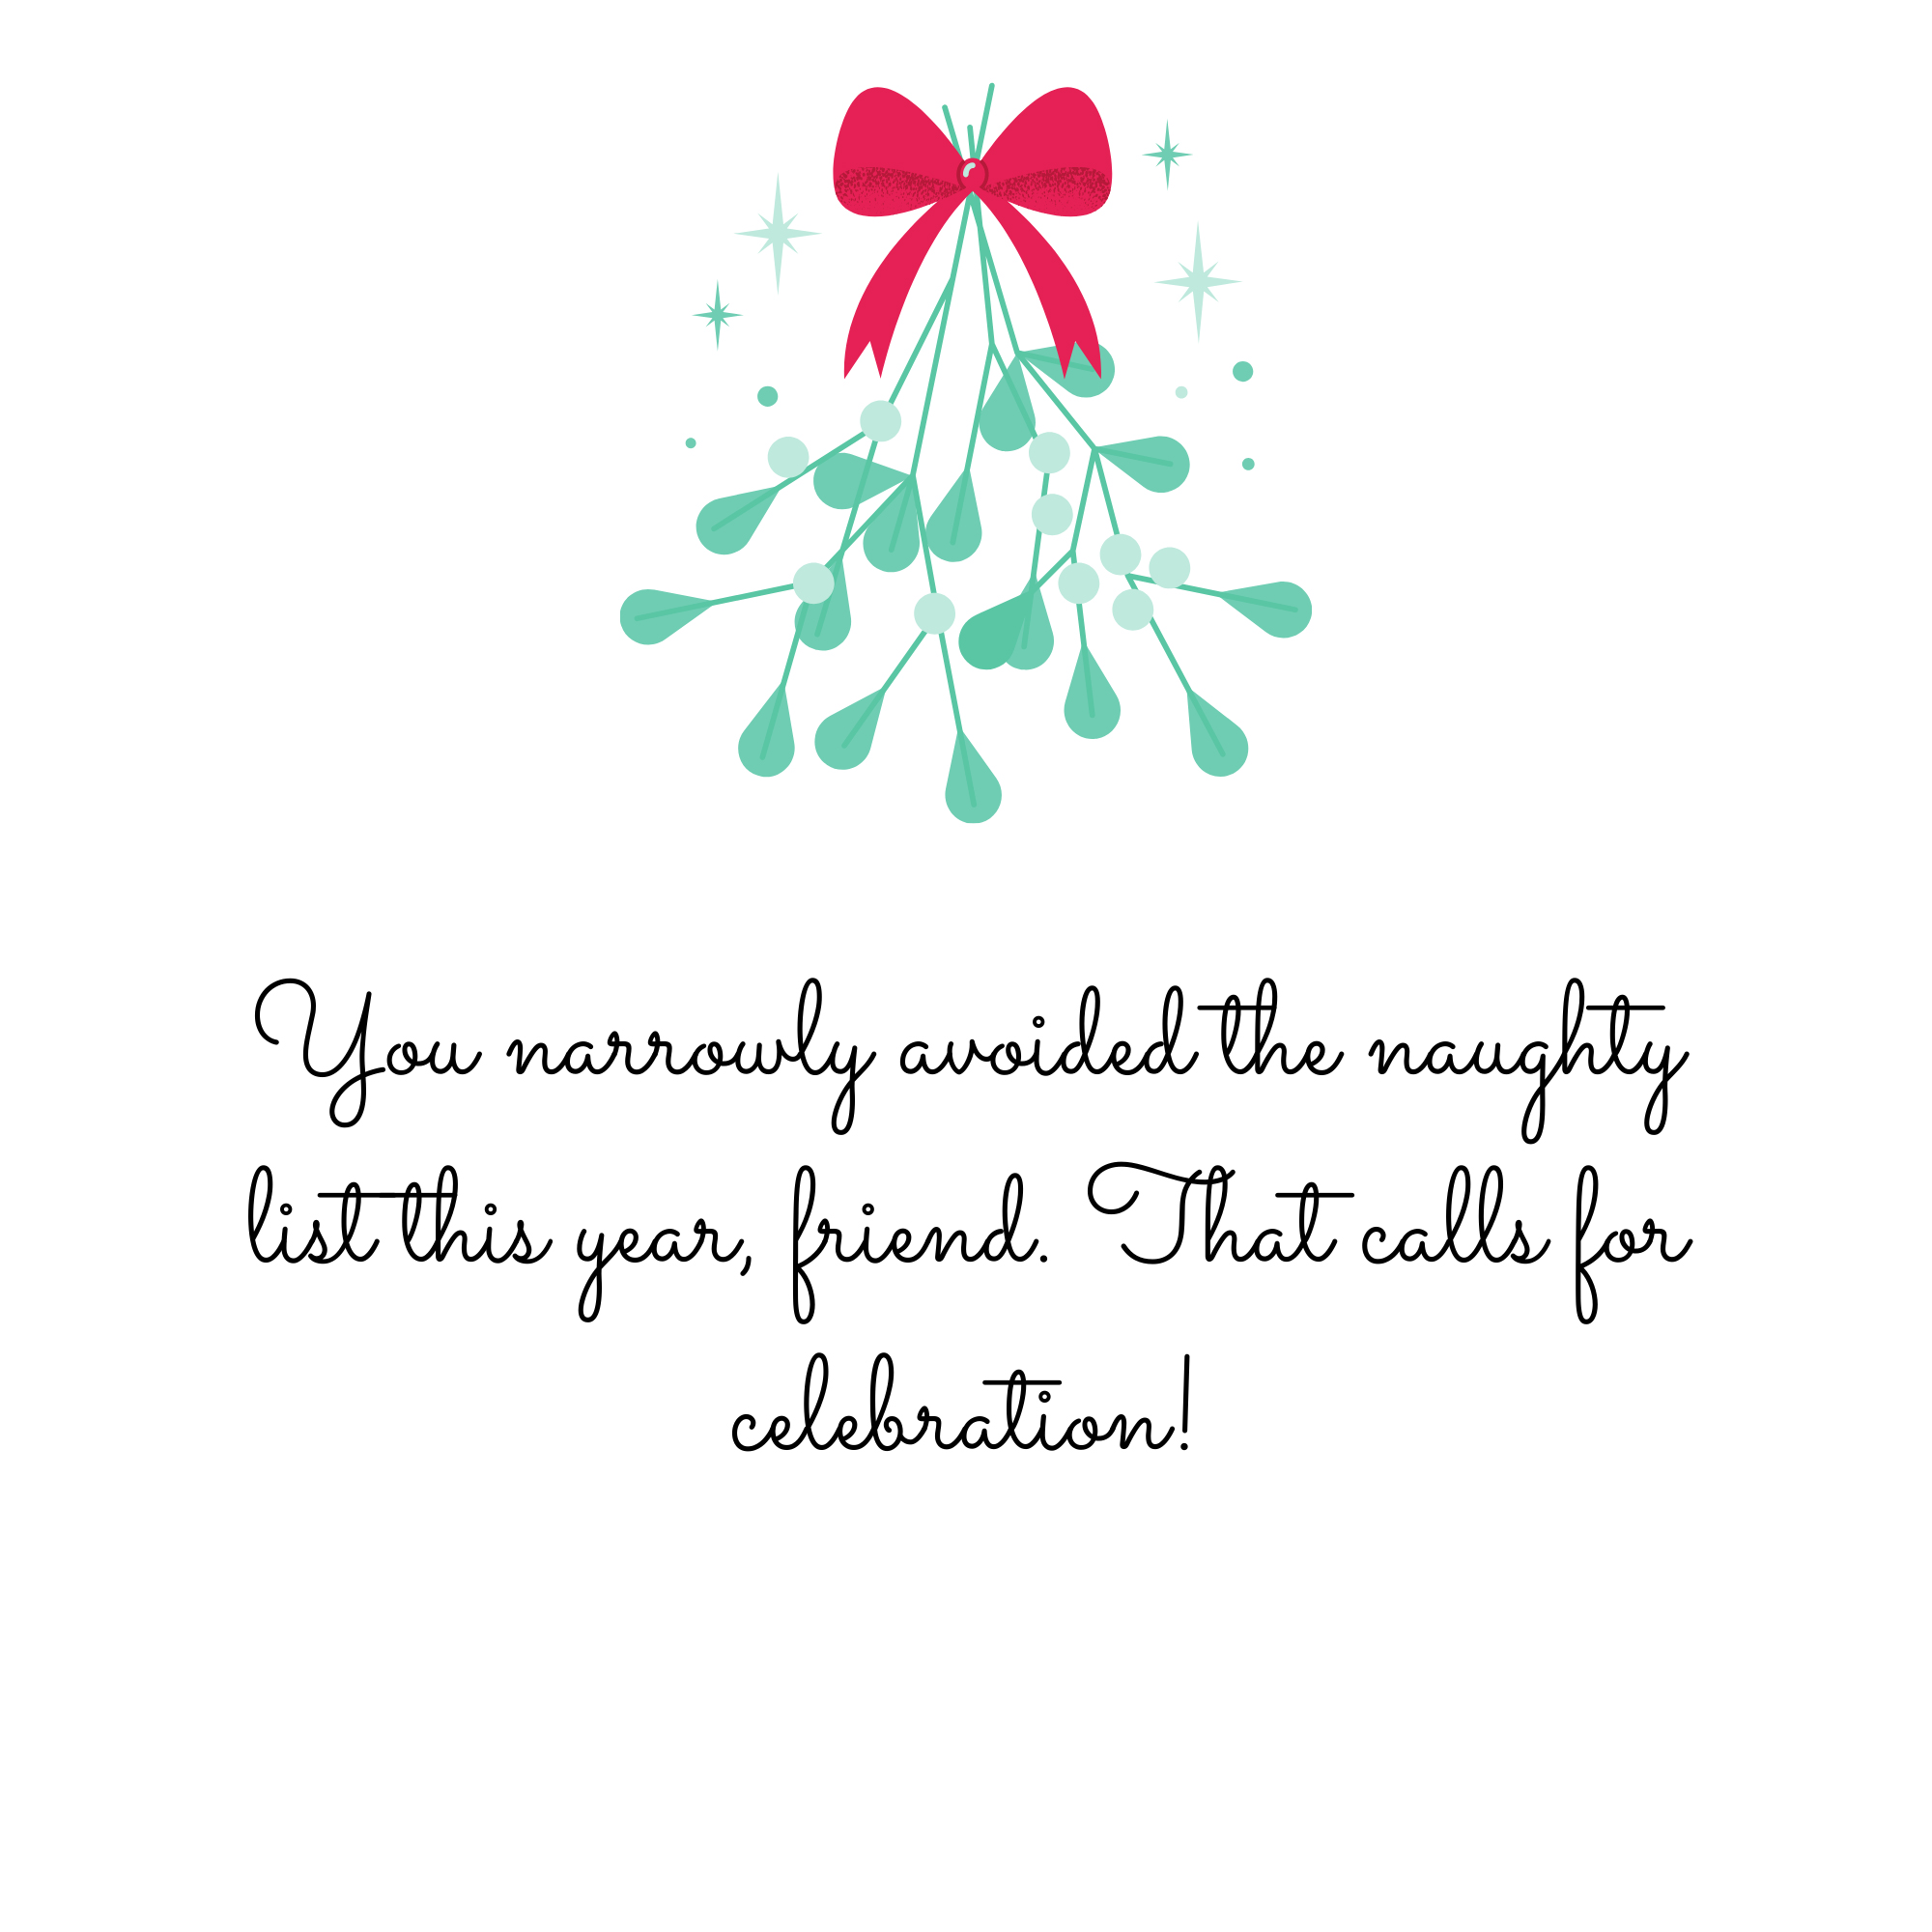 You narrowly avoided the naughty list this year, friend. That calls for celebration!